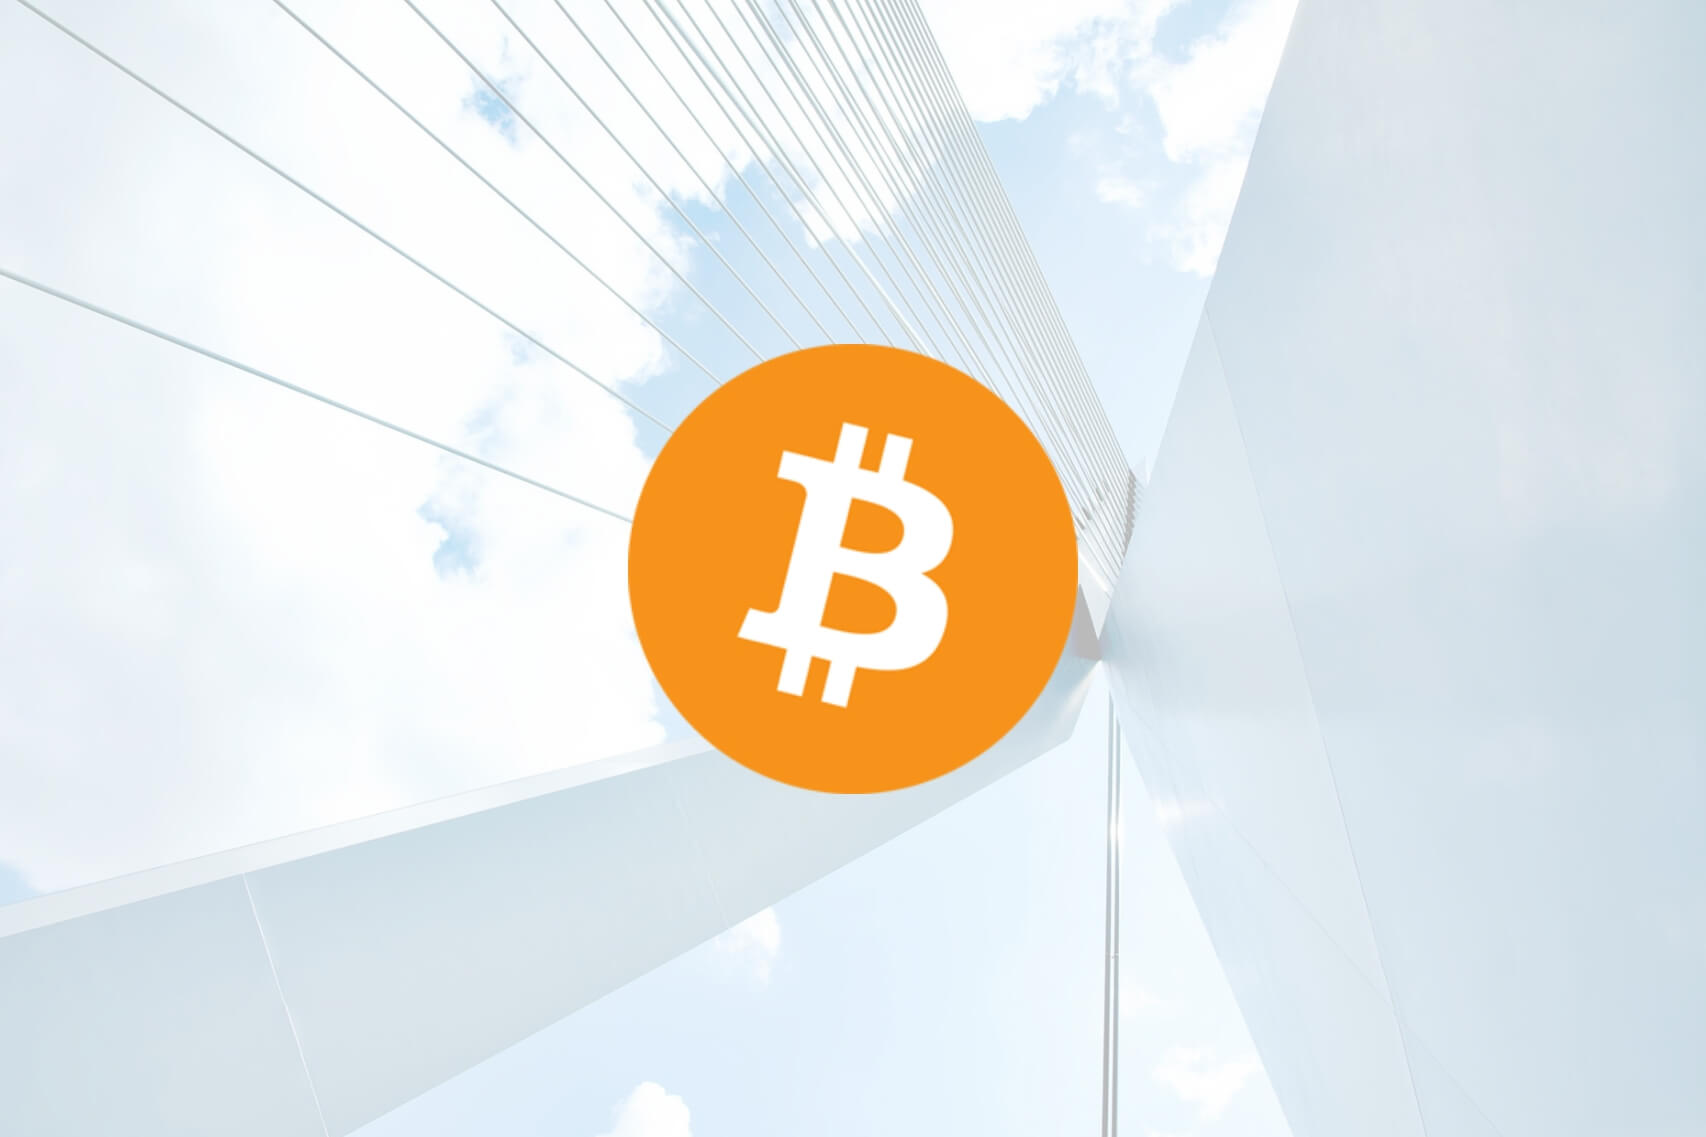 """BTC Soars Above $4,000 But Is This """"Just a Bounce"""" or the Beginning of a Short-Term Bull Run?"""